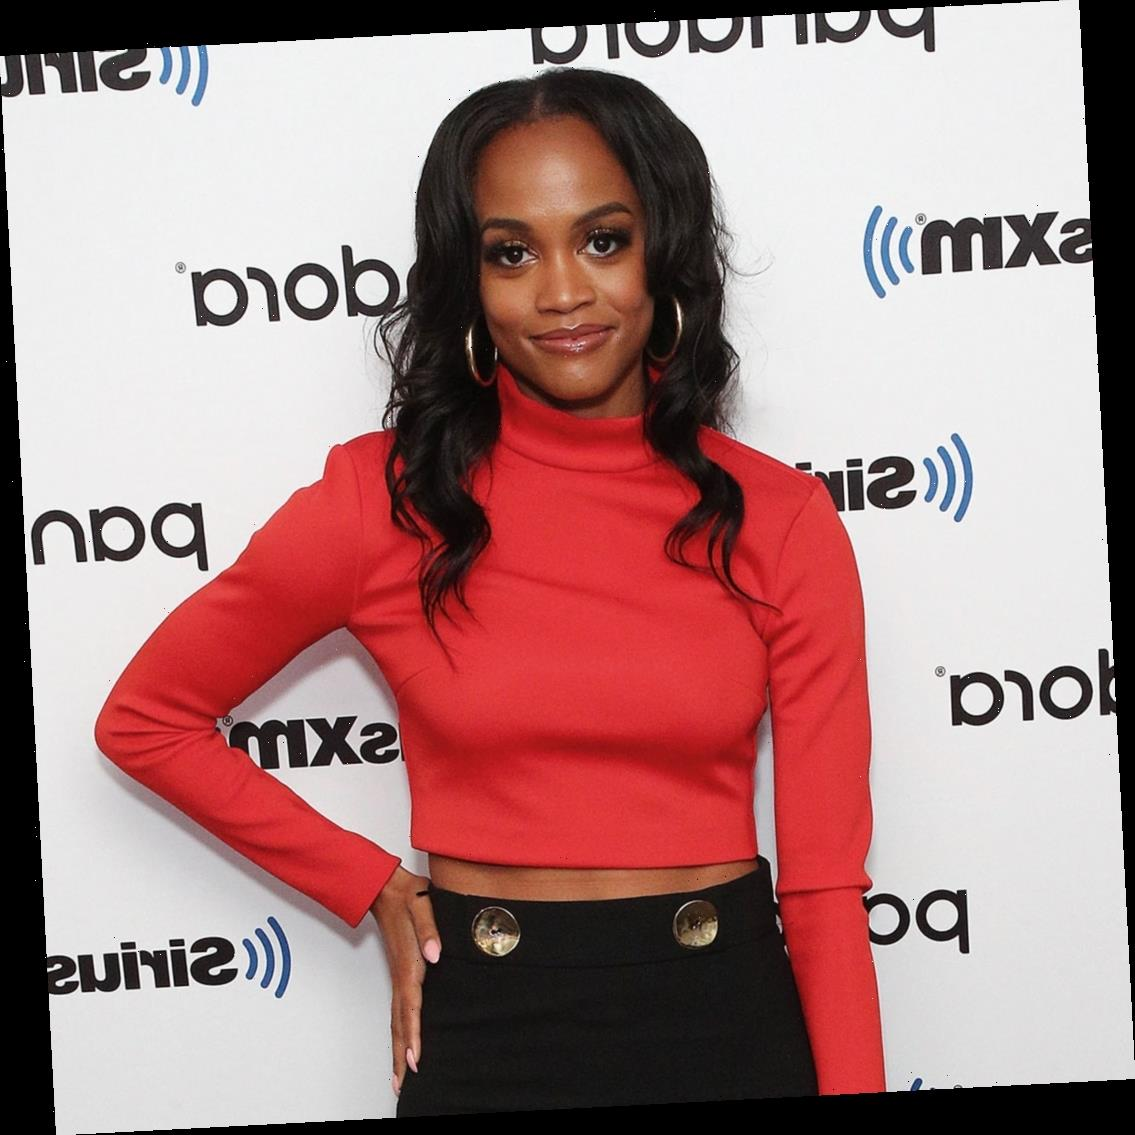 Bachelor Producers Condemn 'Completely Inexcusable' Harassment Against Rachel Lindsay: 'Rooted in Racism'